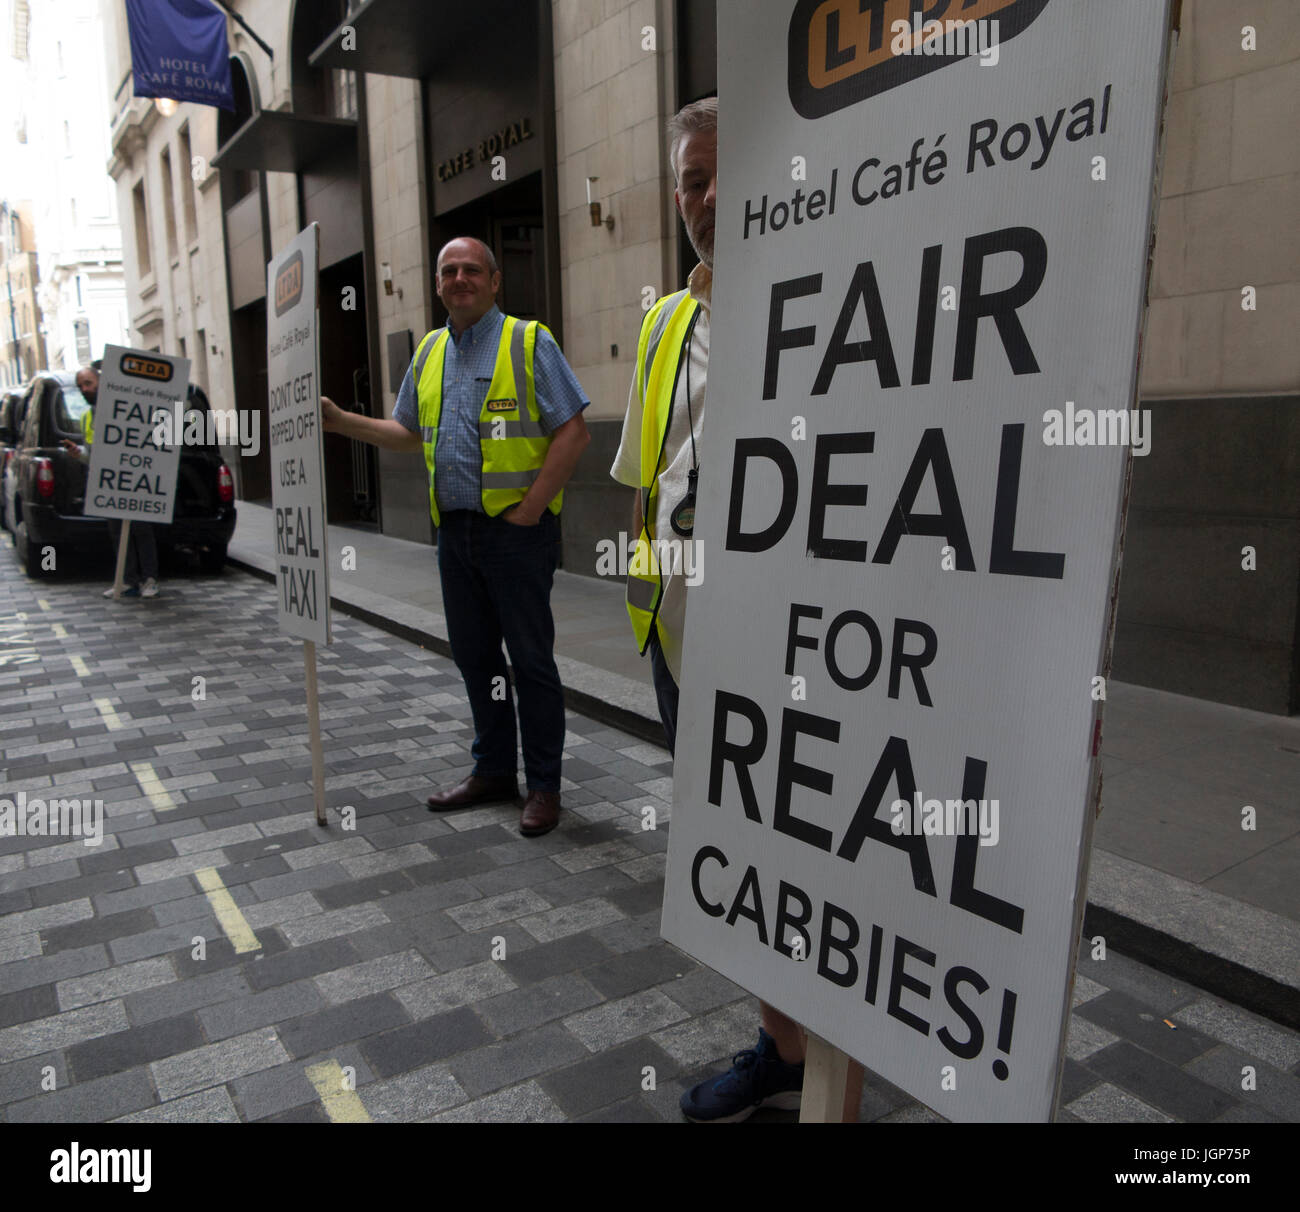 Cabbies protest outside the Cafe Royal Hotel wanting a fairer deal Stock Photo